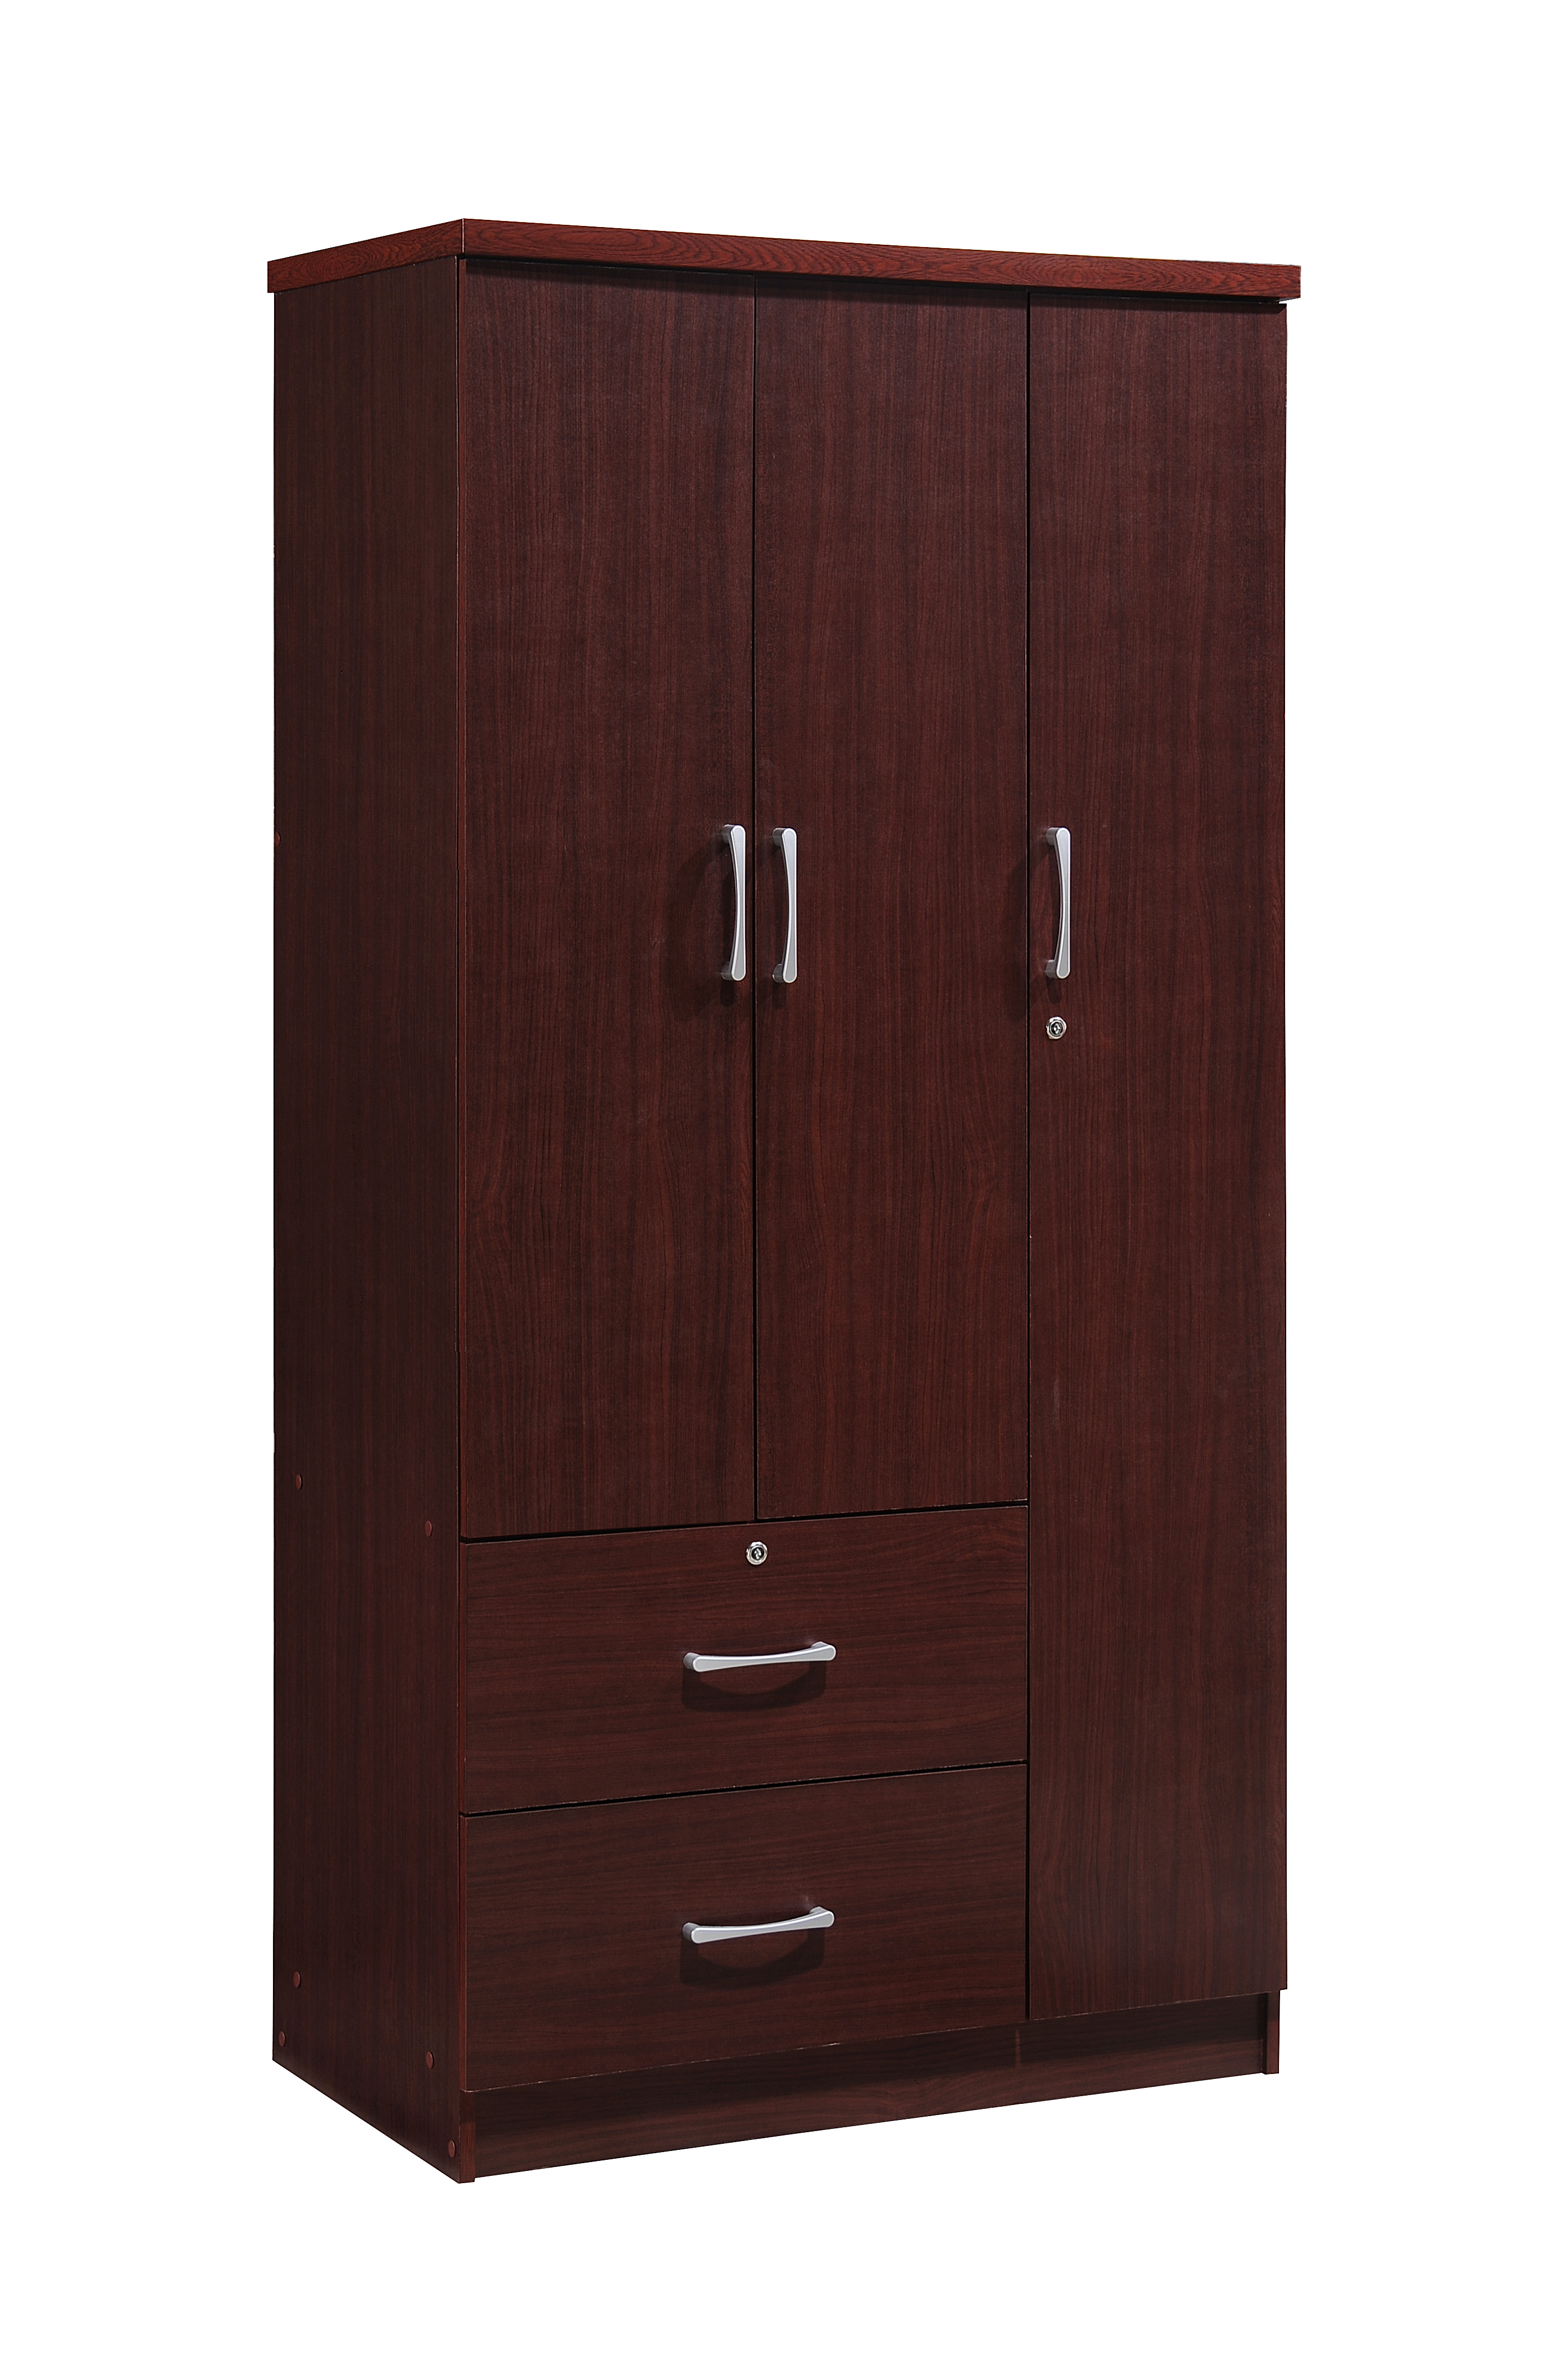 Hodedah 3-Door 36 in. Wide Armoire with 2-Drawers, Clothing Rod and 3-Shelves in Mahogany by Hodedah